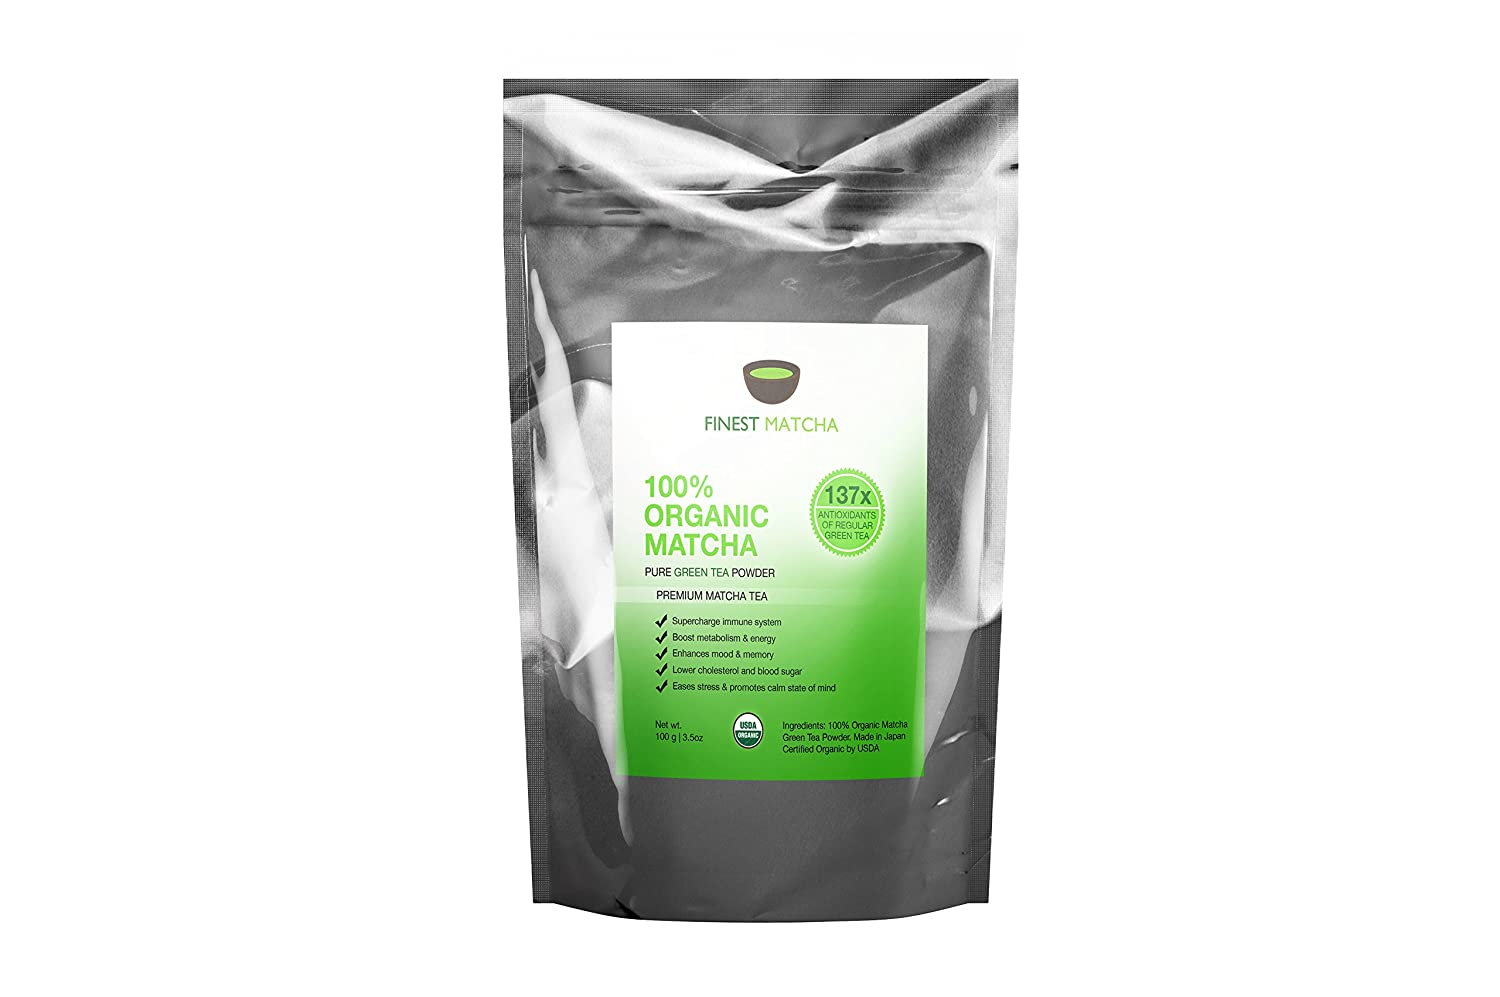 Matcha Green Tea Powder, 100% Organic Japanese Premium Matcha - Fat Burner, Energy Booster, 137 x Antioxidants, 100g Finest Matcha